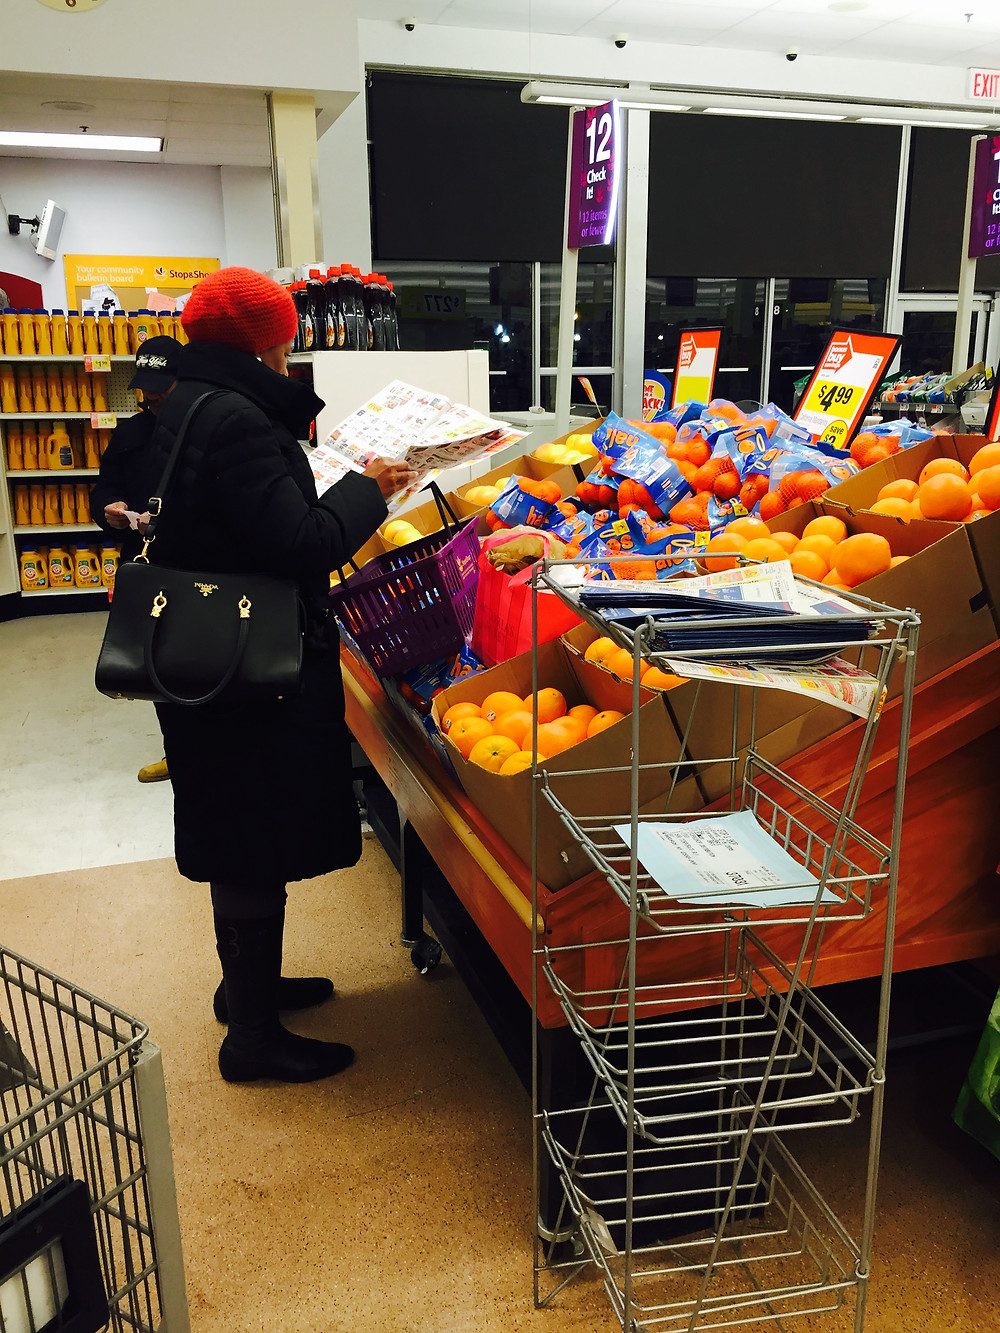 Woman crushing fruit with her basket  in produce section of grocery store as she reads a paper